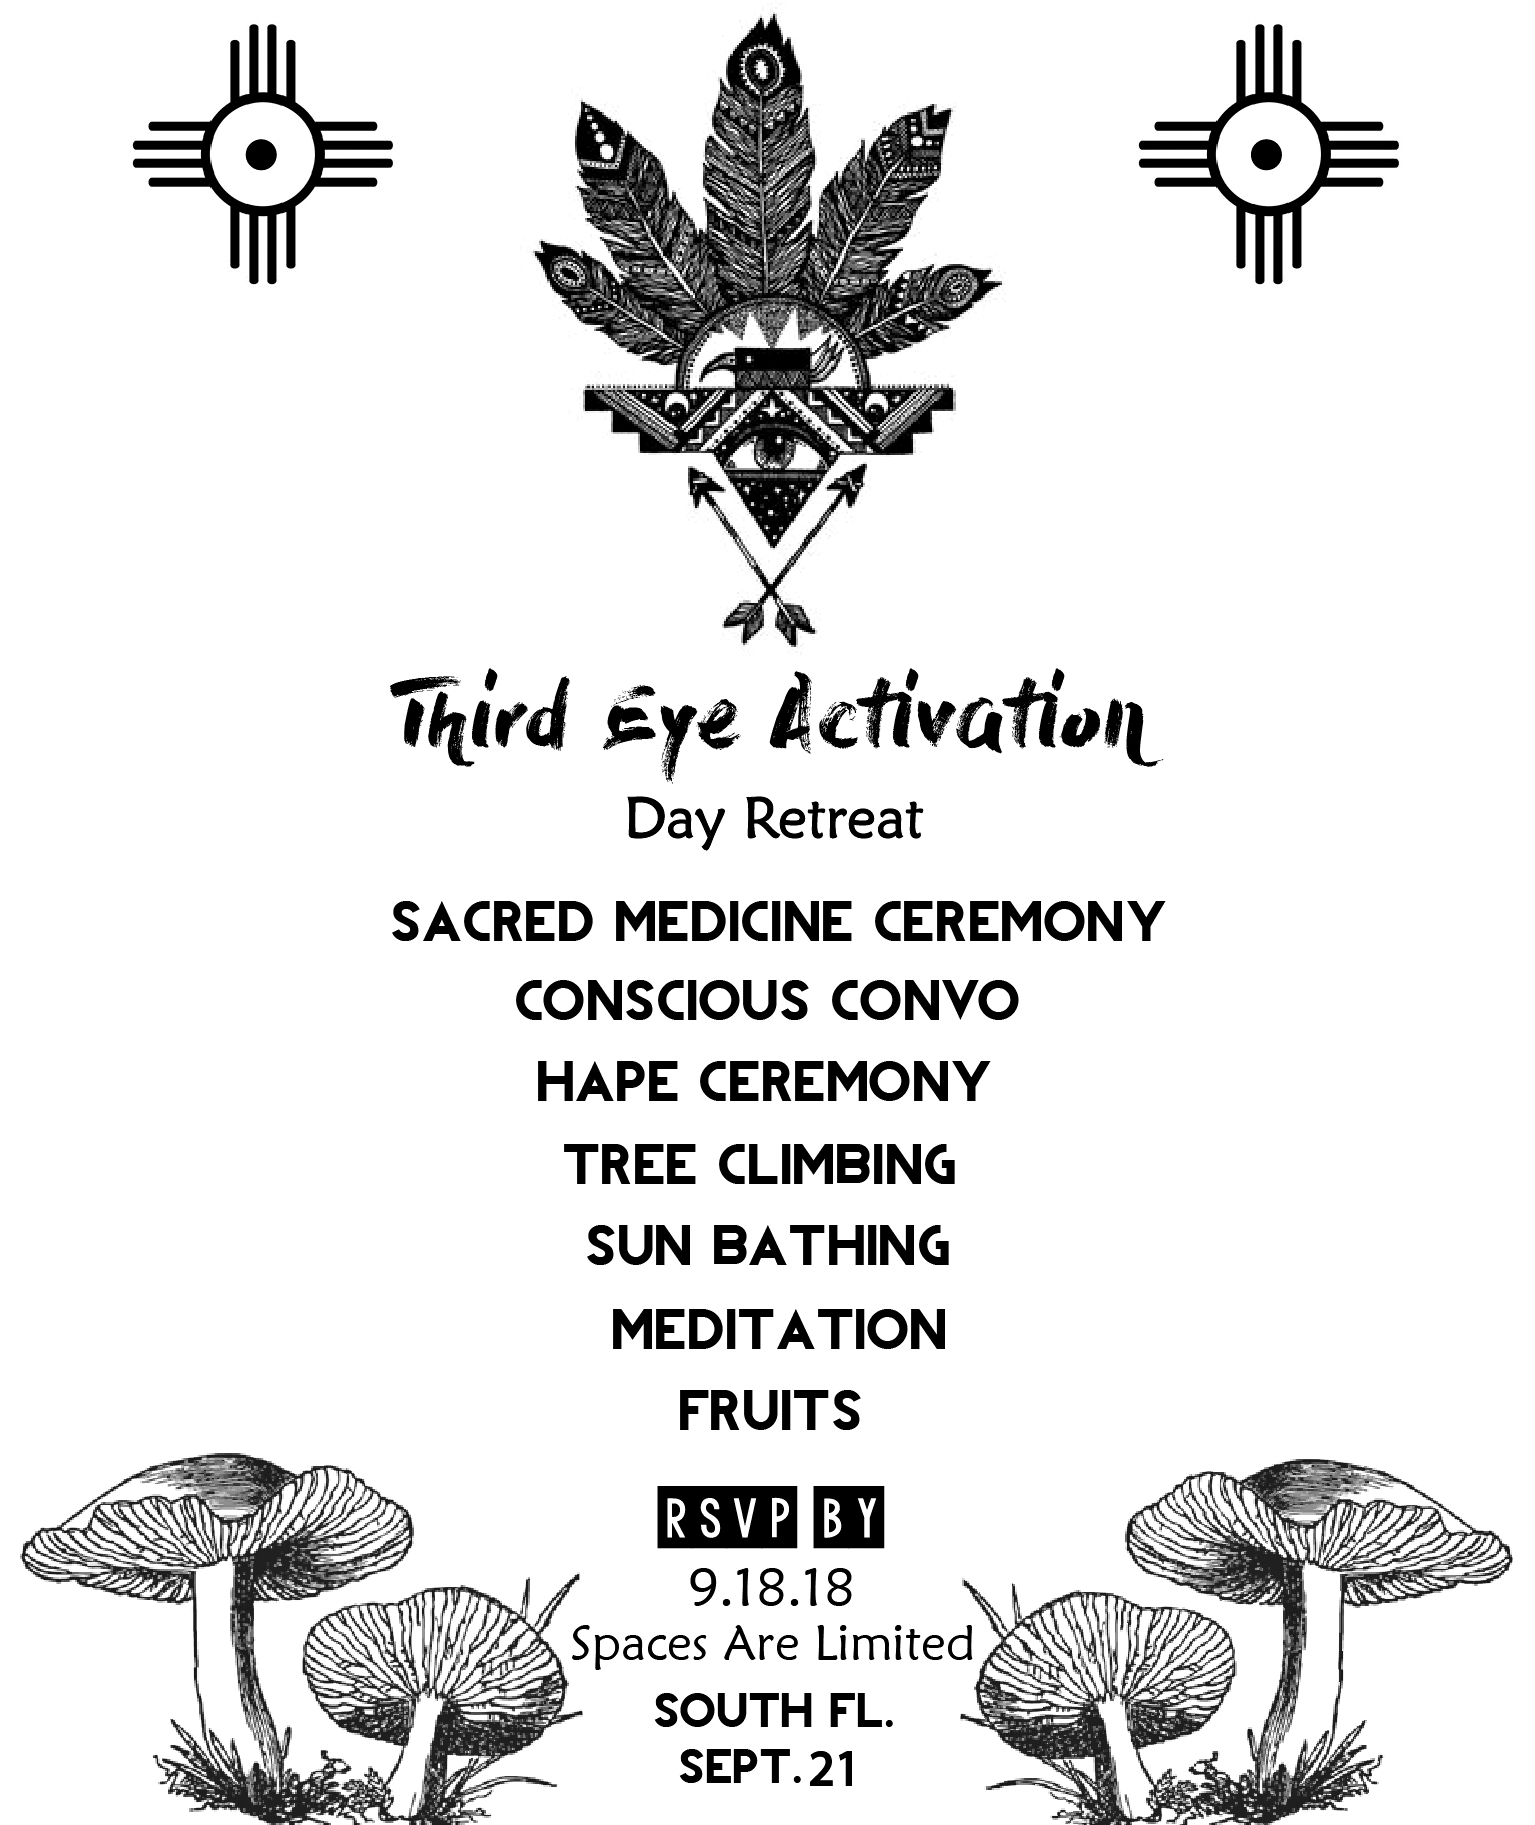 retreatflyer1.jpg